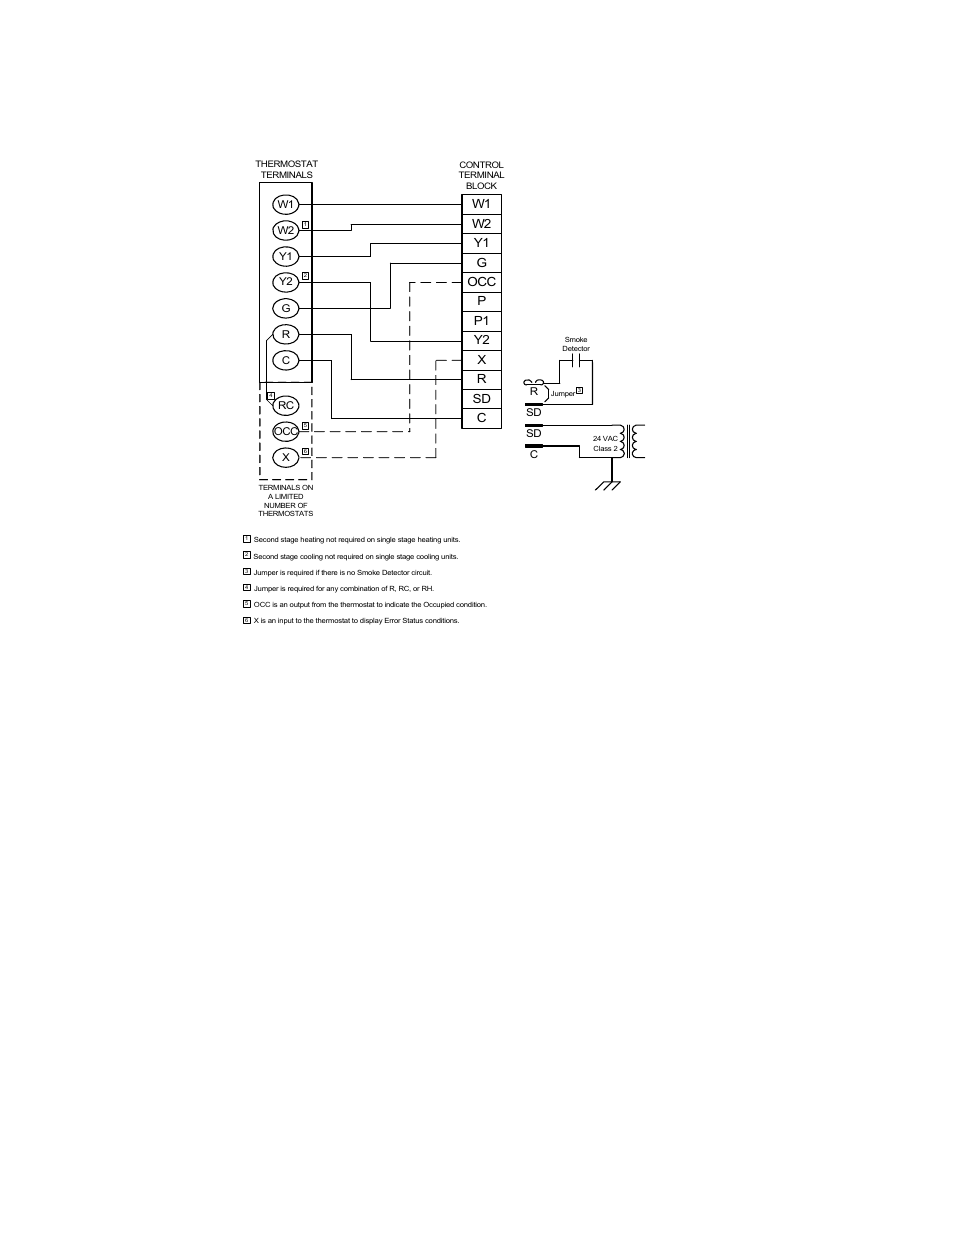 13 Typical Simplicity U00ae Control Wiring  Diagram  Figure 13